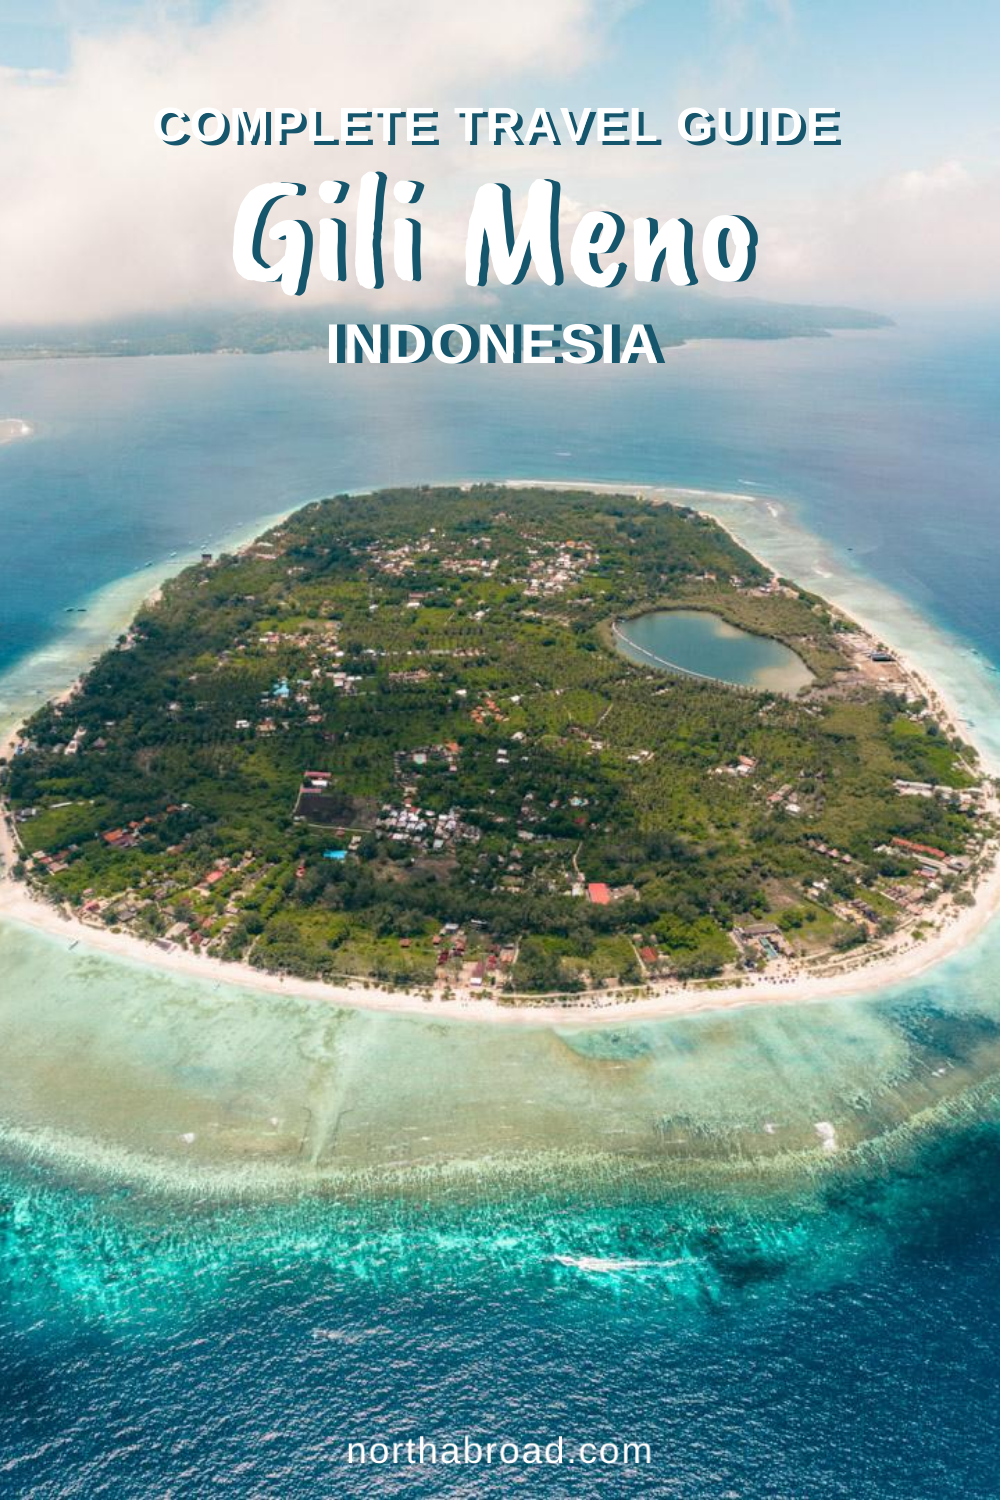 A Complete Travel Guide to Gili Meno in Indonesia: A Peaceful Island Close to Bali